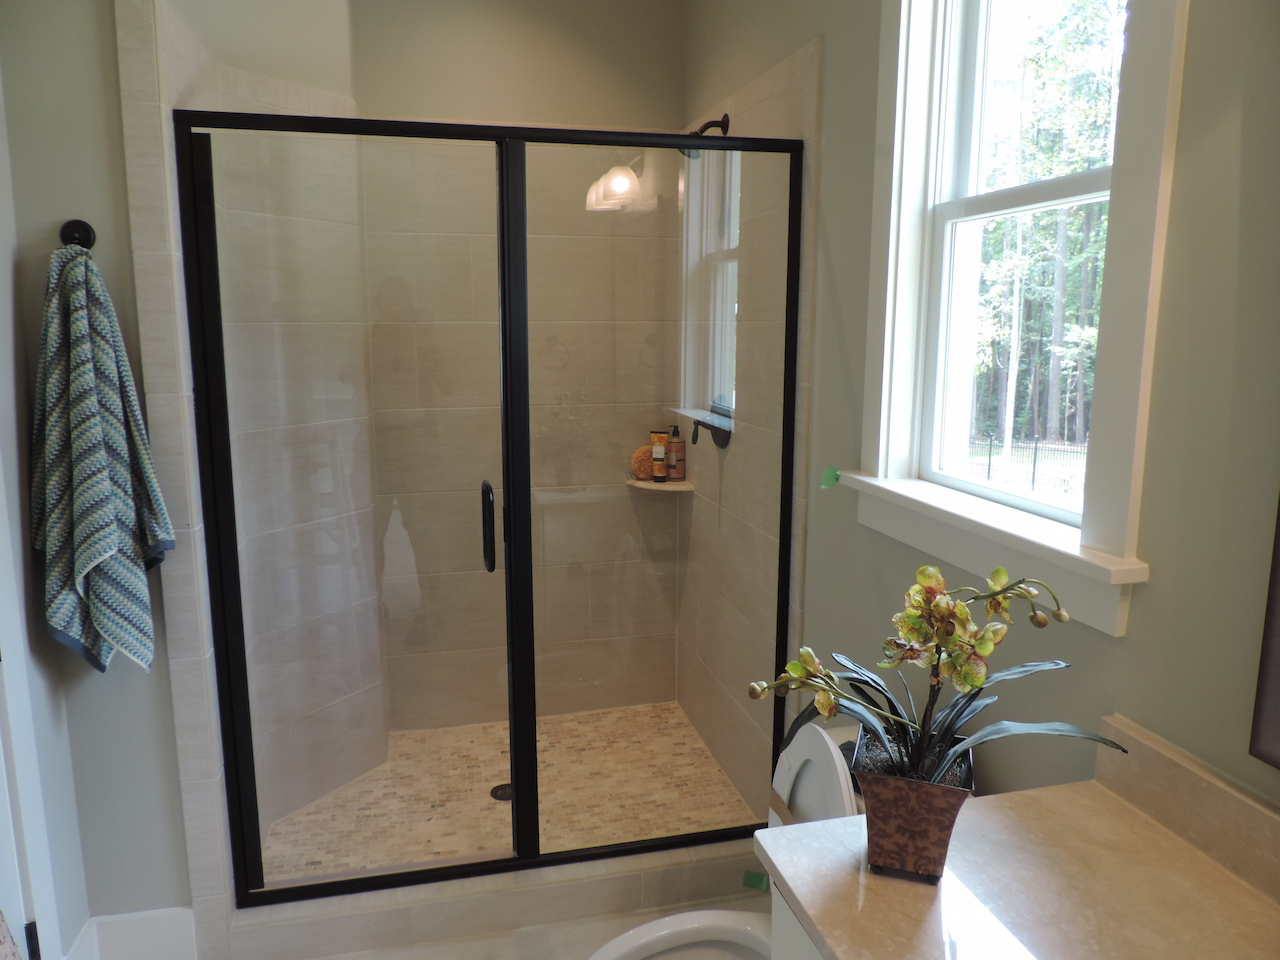 Semi-Frameless Shower Example50